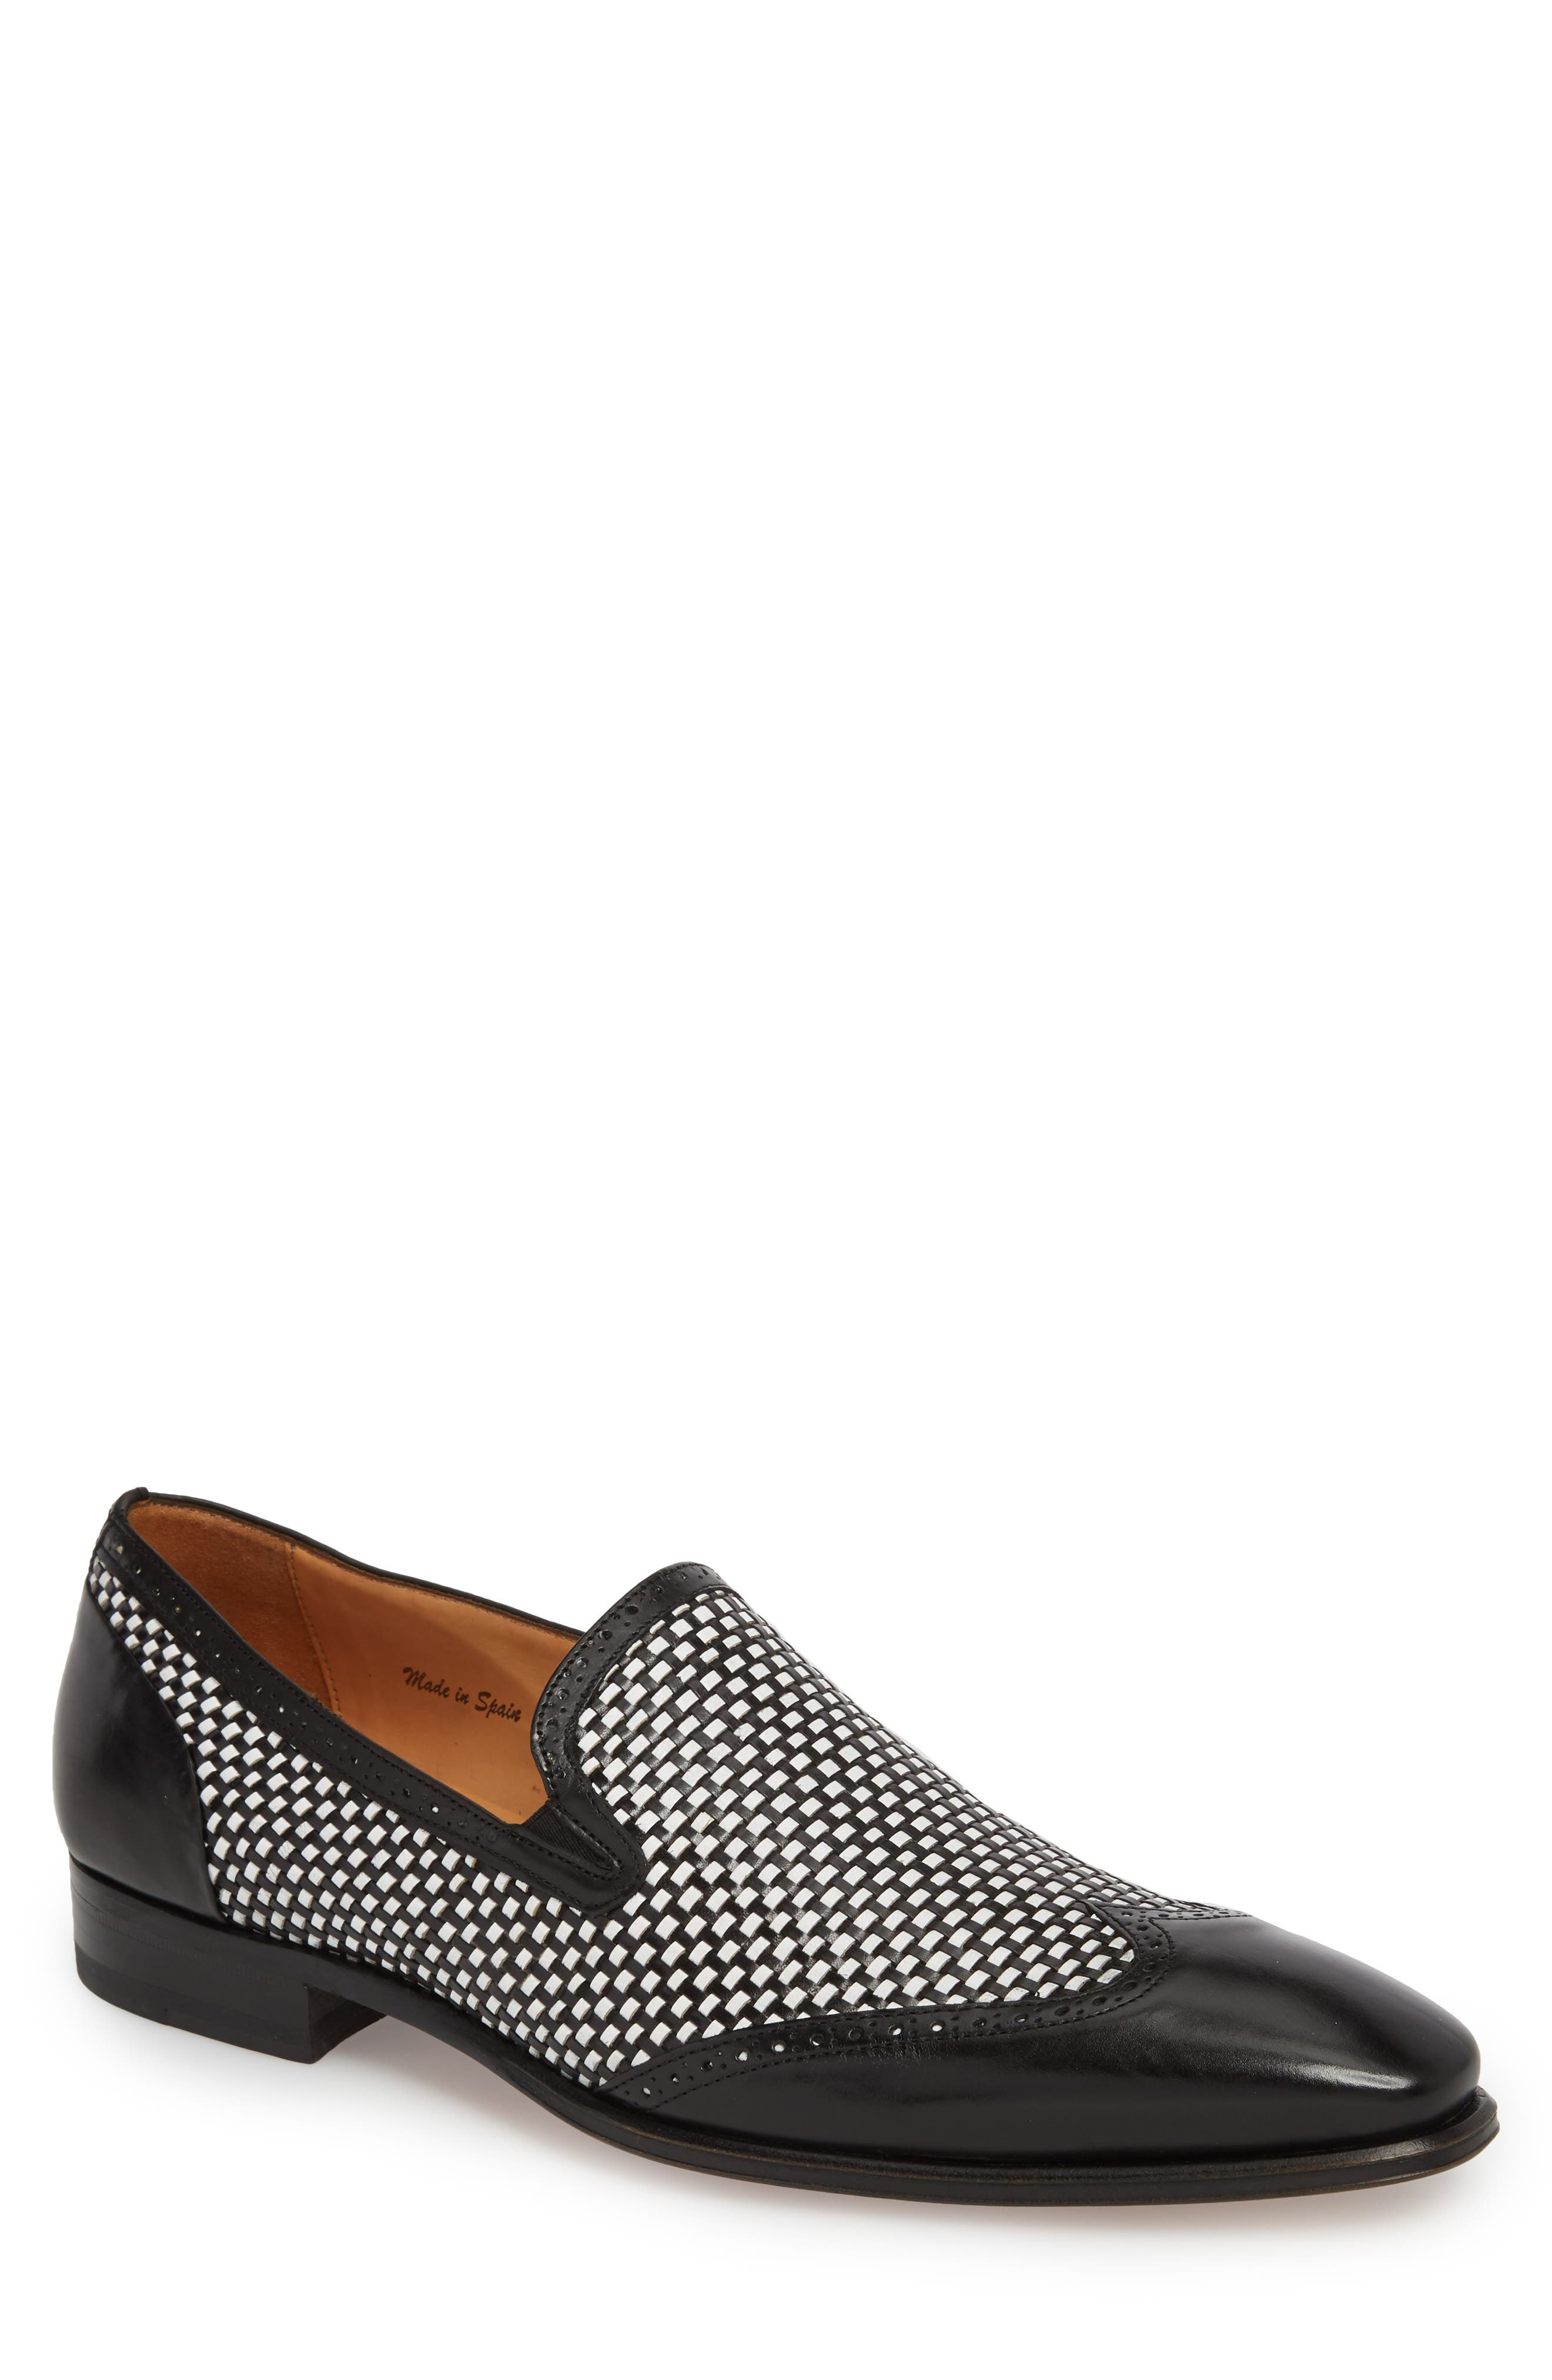 Nepos Woven Wingtip Loafer,                             Main thumbnail 1, color,                             Black/ White Leather